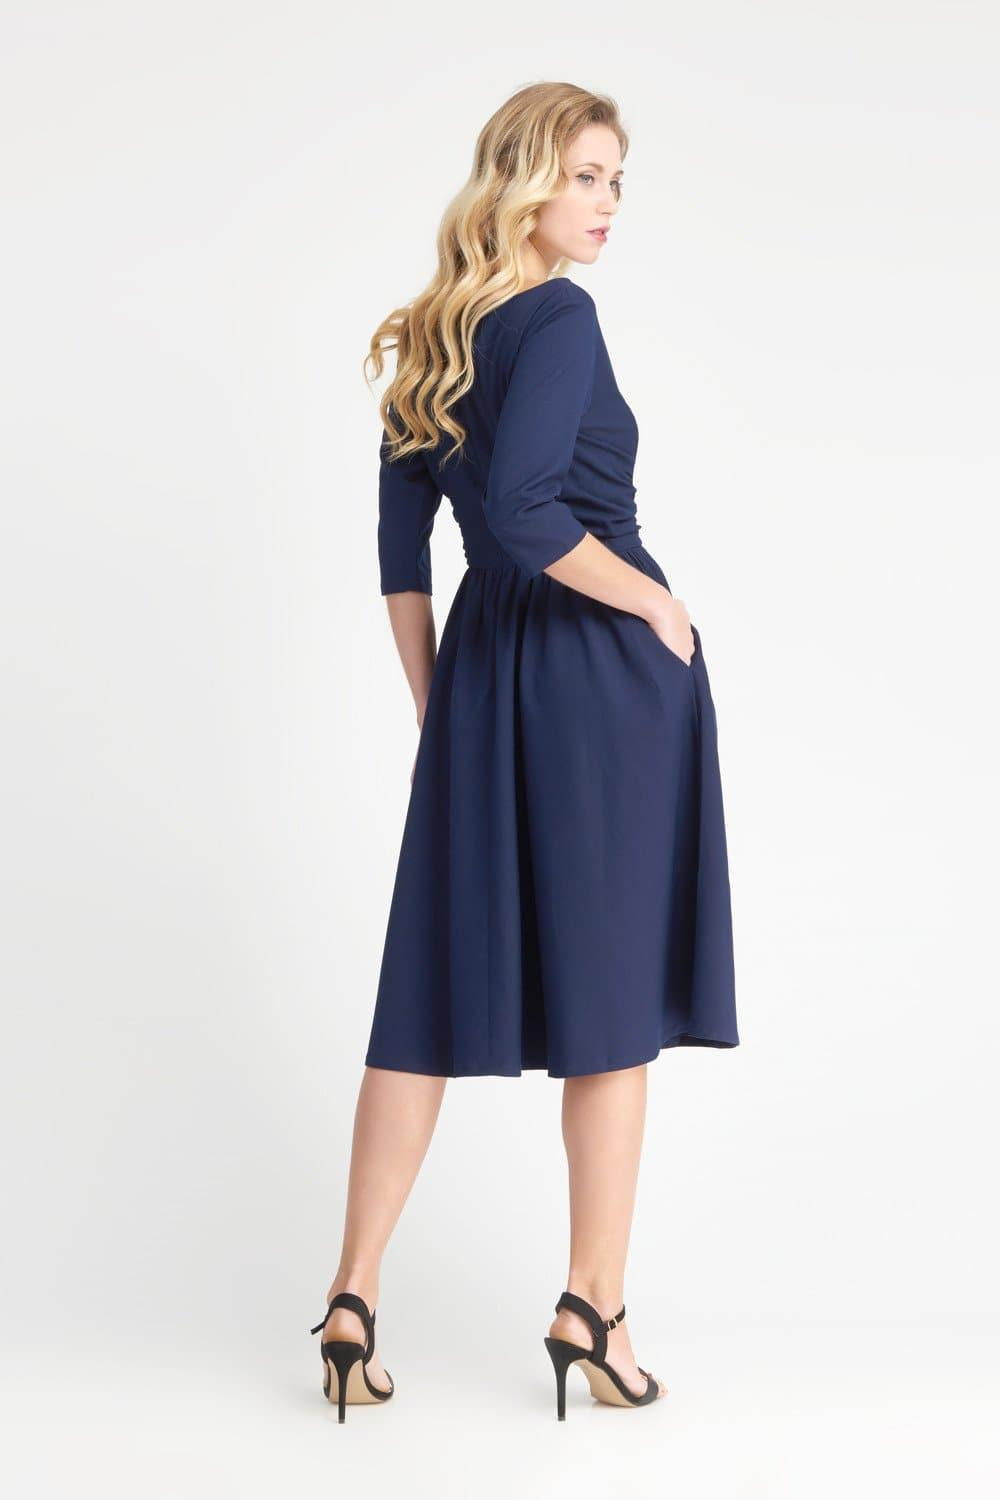 Vivian - Navy Ruched Dress - Zoe Vine